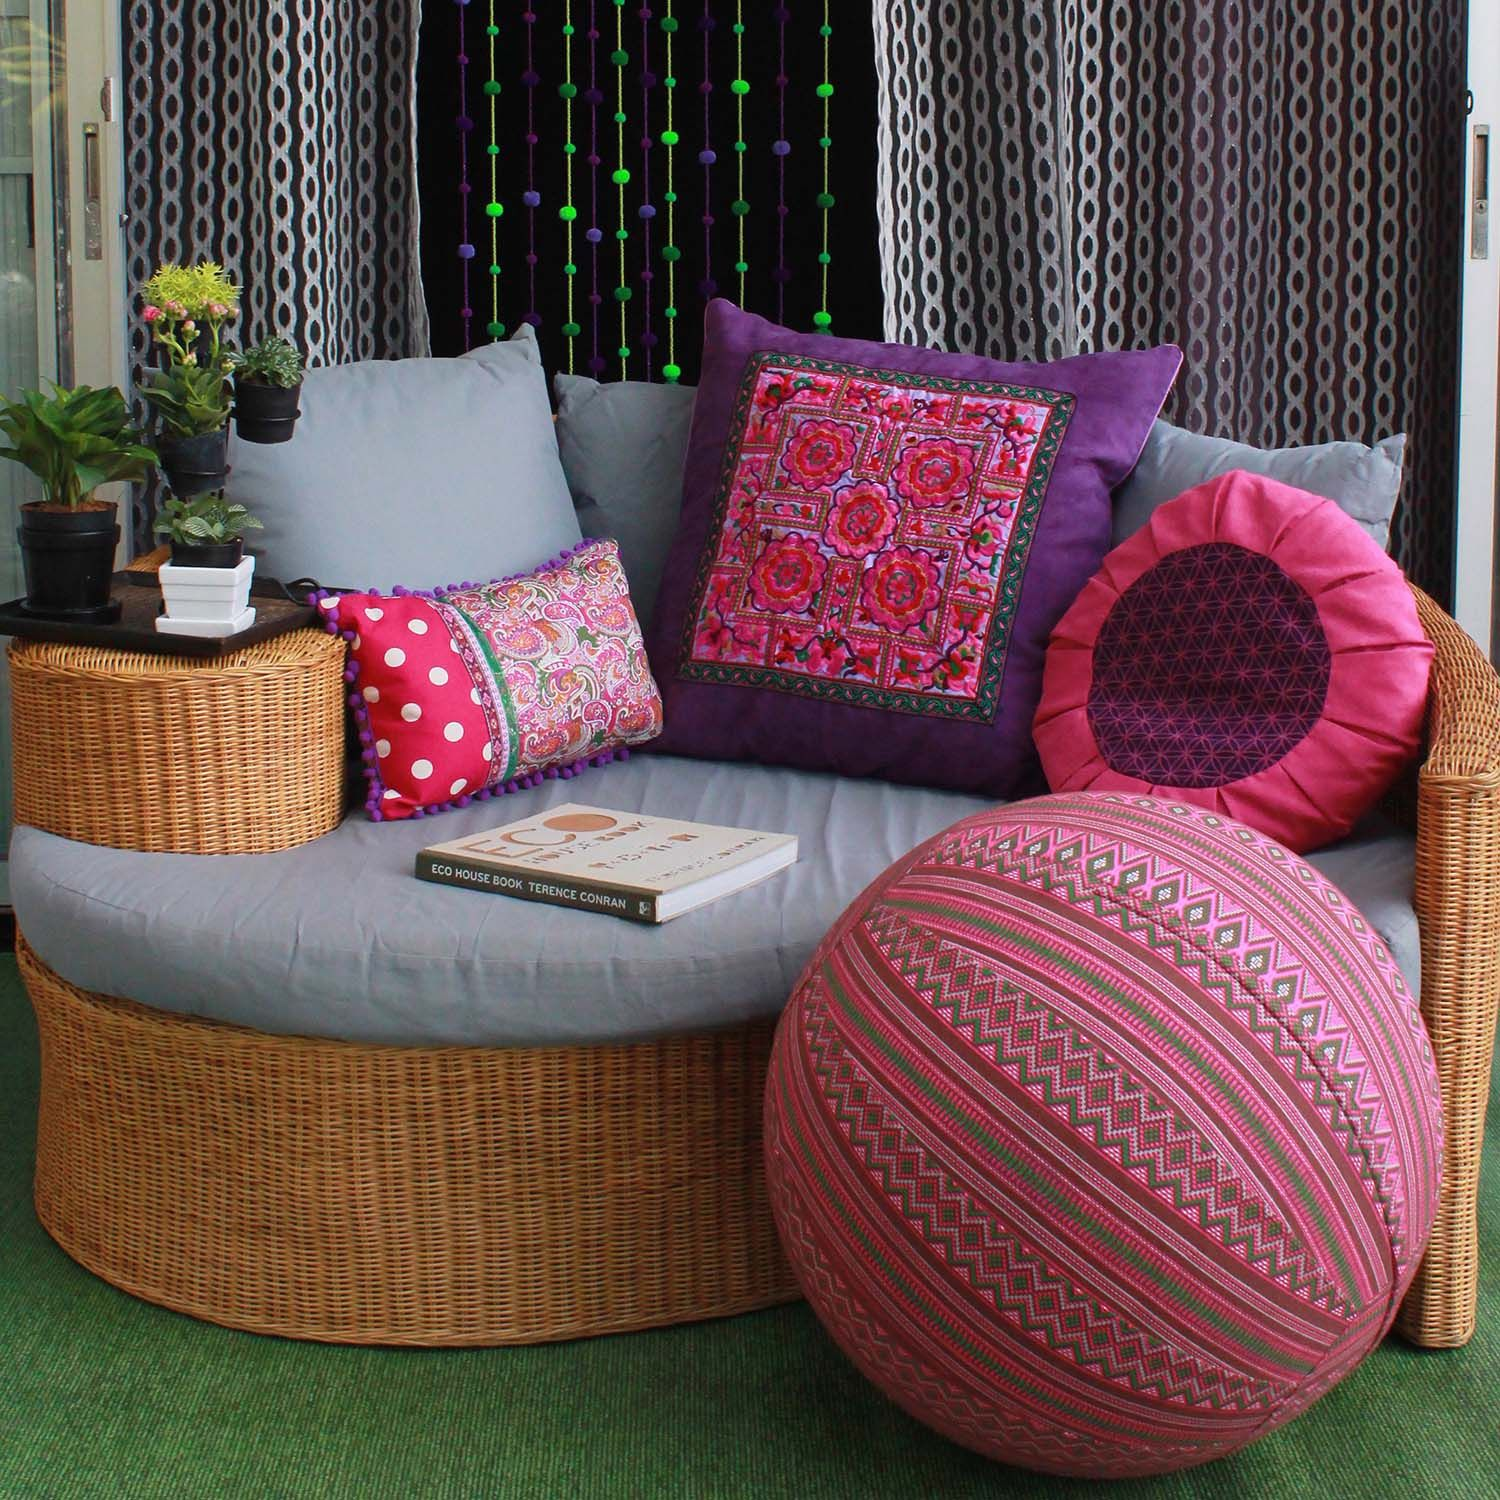 She Spotlight Global Groove Life She Changes Everything Bright Pillows Groove Life Outdoor Furniture Sets